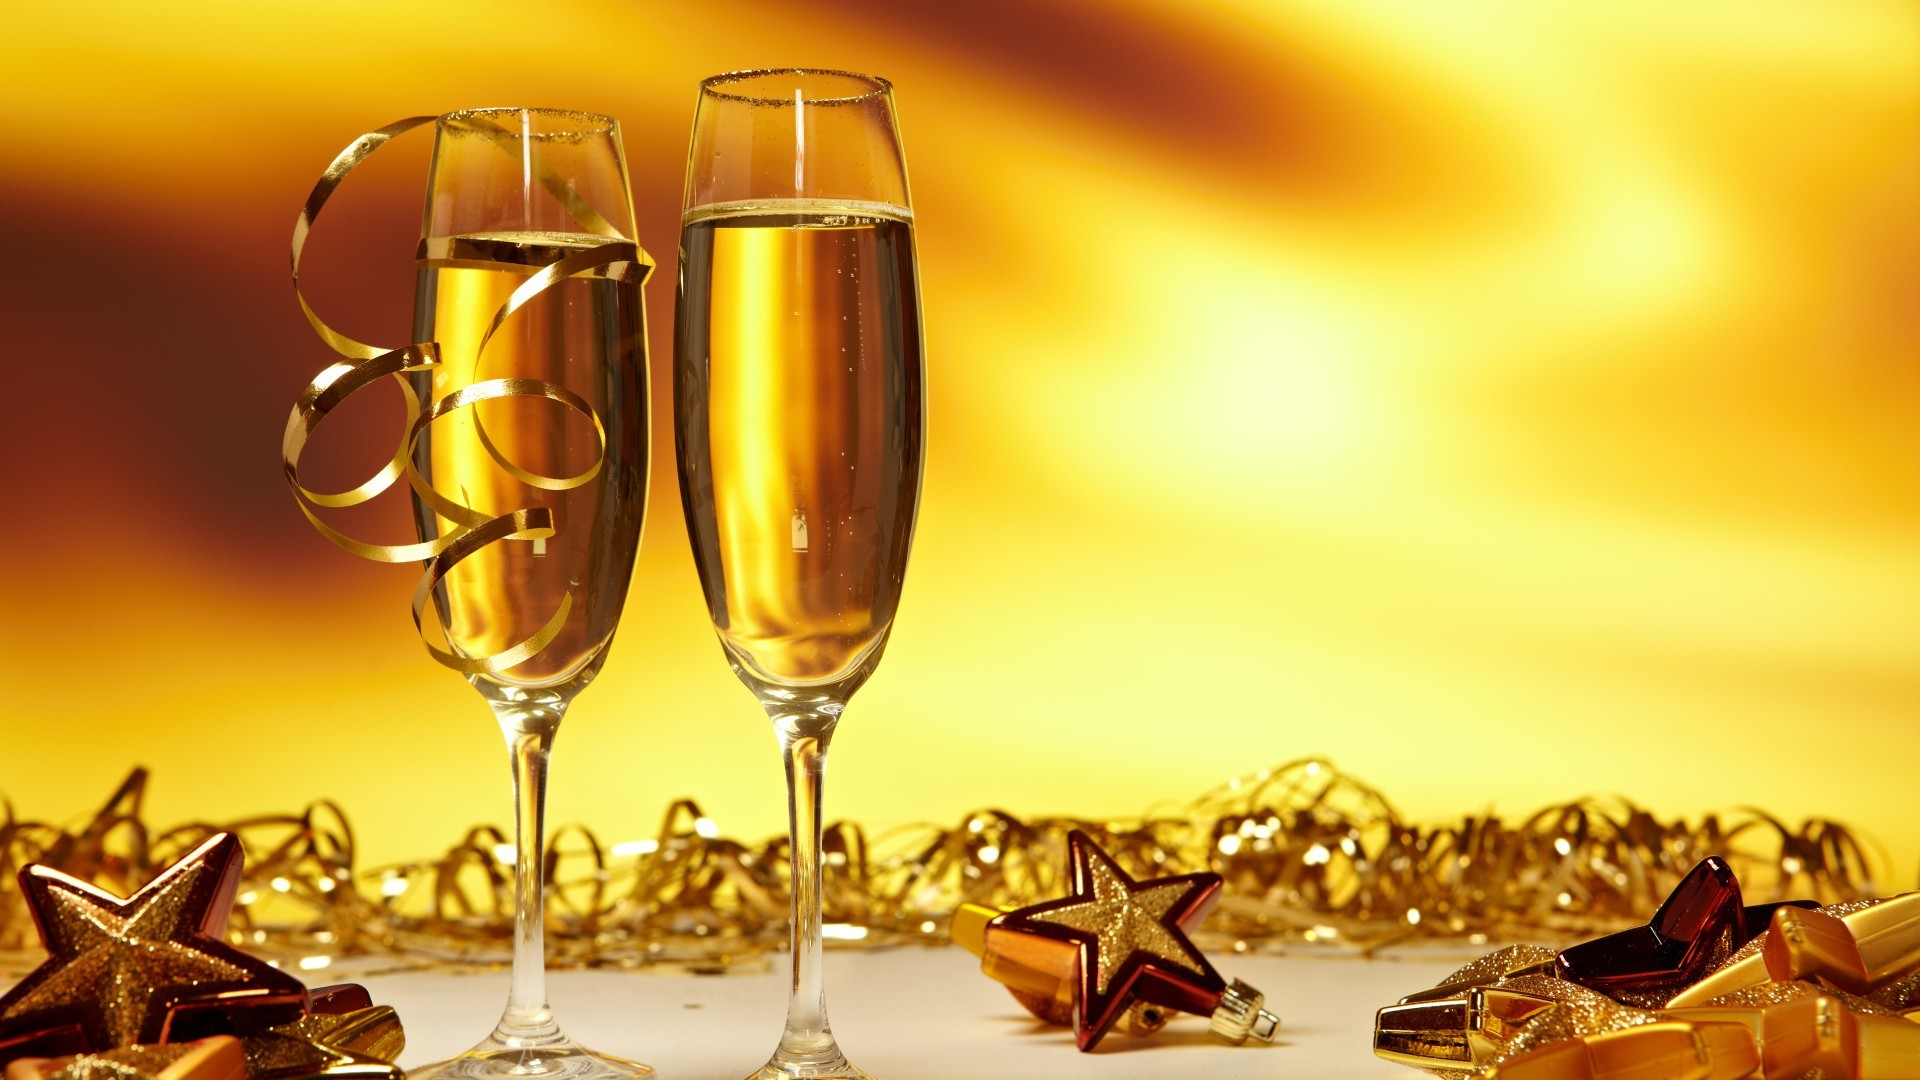 new year champagne iphone wallpapers for free